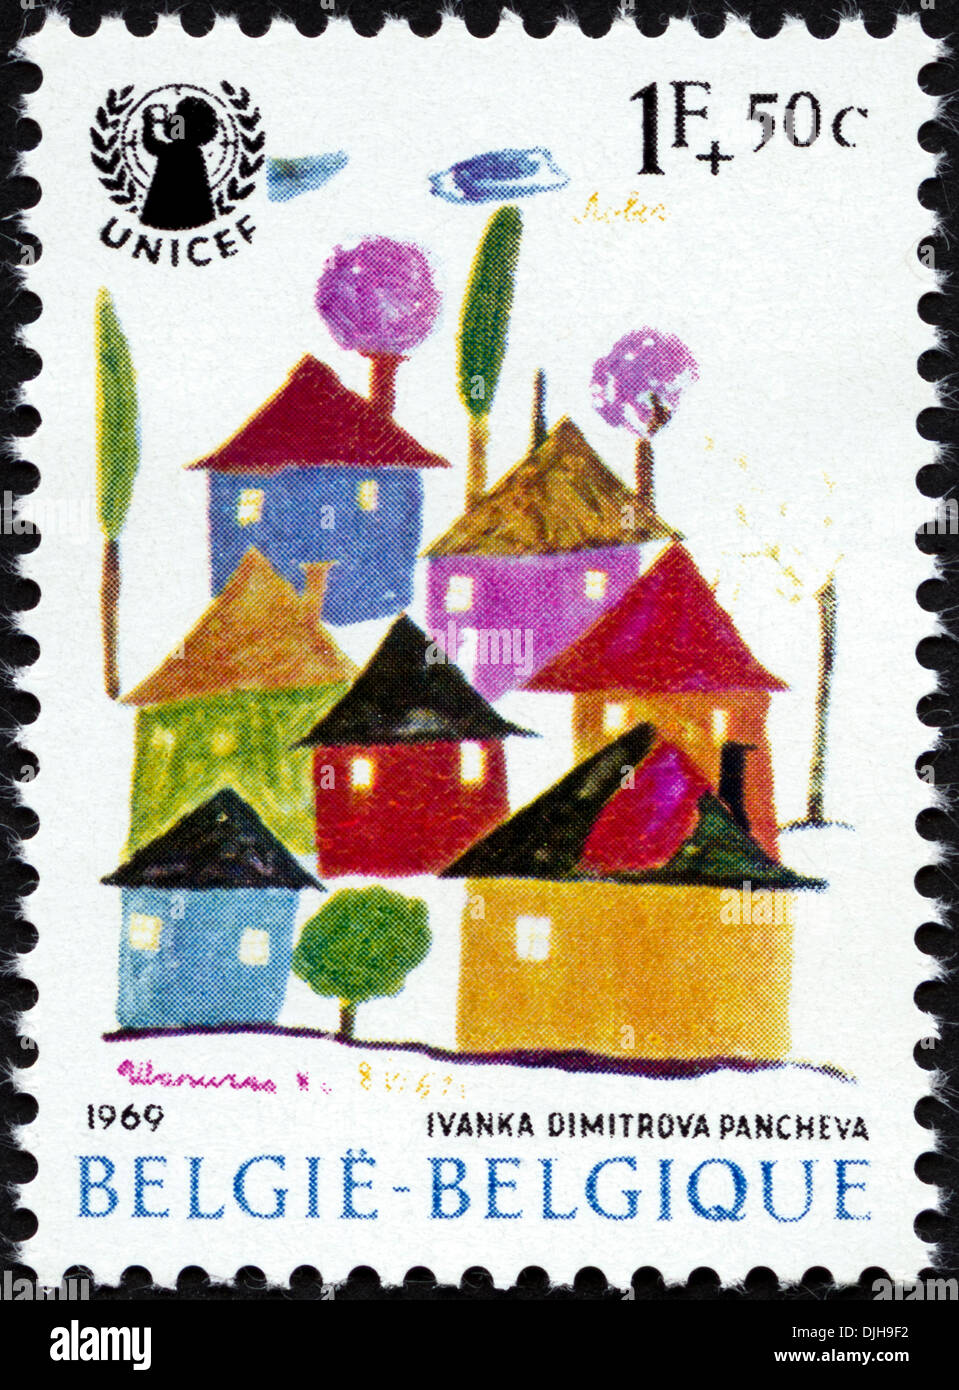 postage stamp Belgium 1F+50c featuring UNICEF children's painting issued 1969 - Stock Image